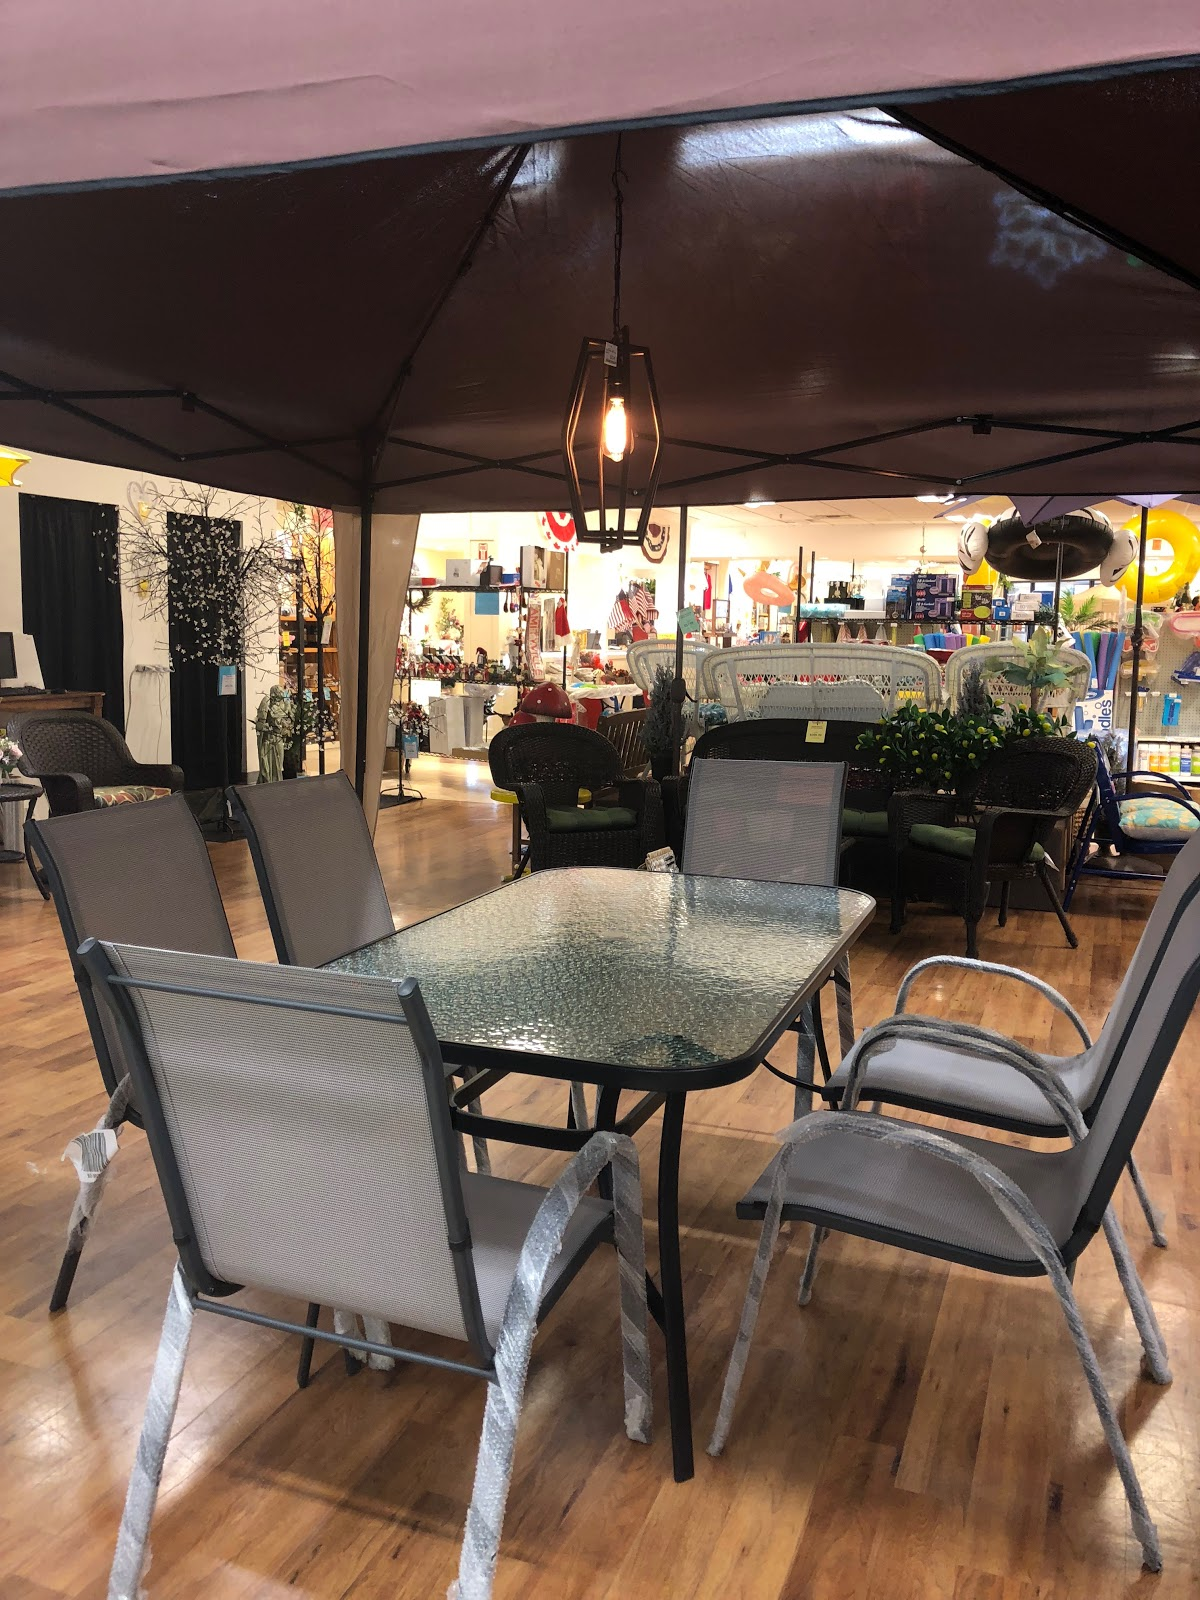 Outdoor Patio Furniture Set on Display